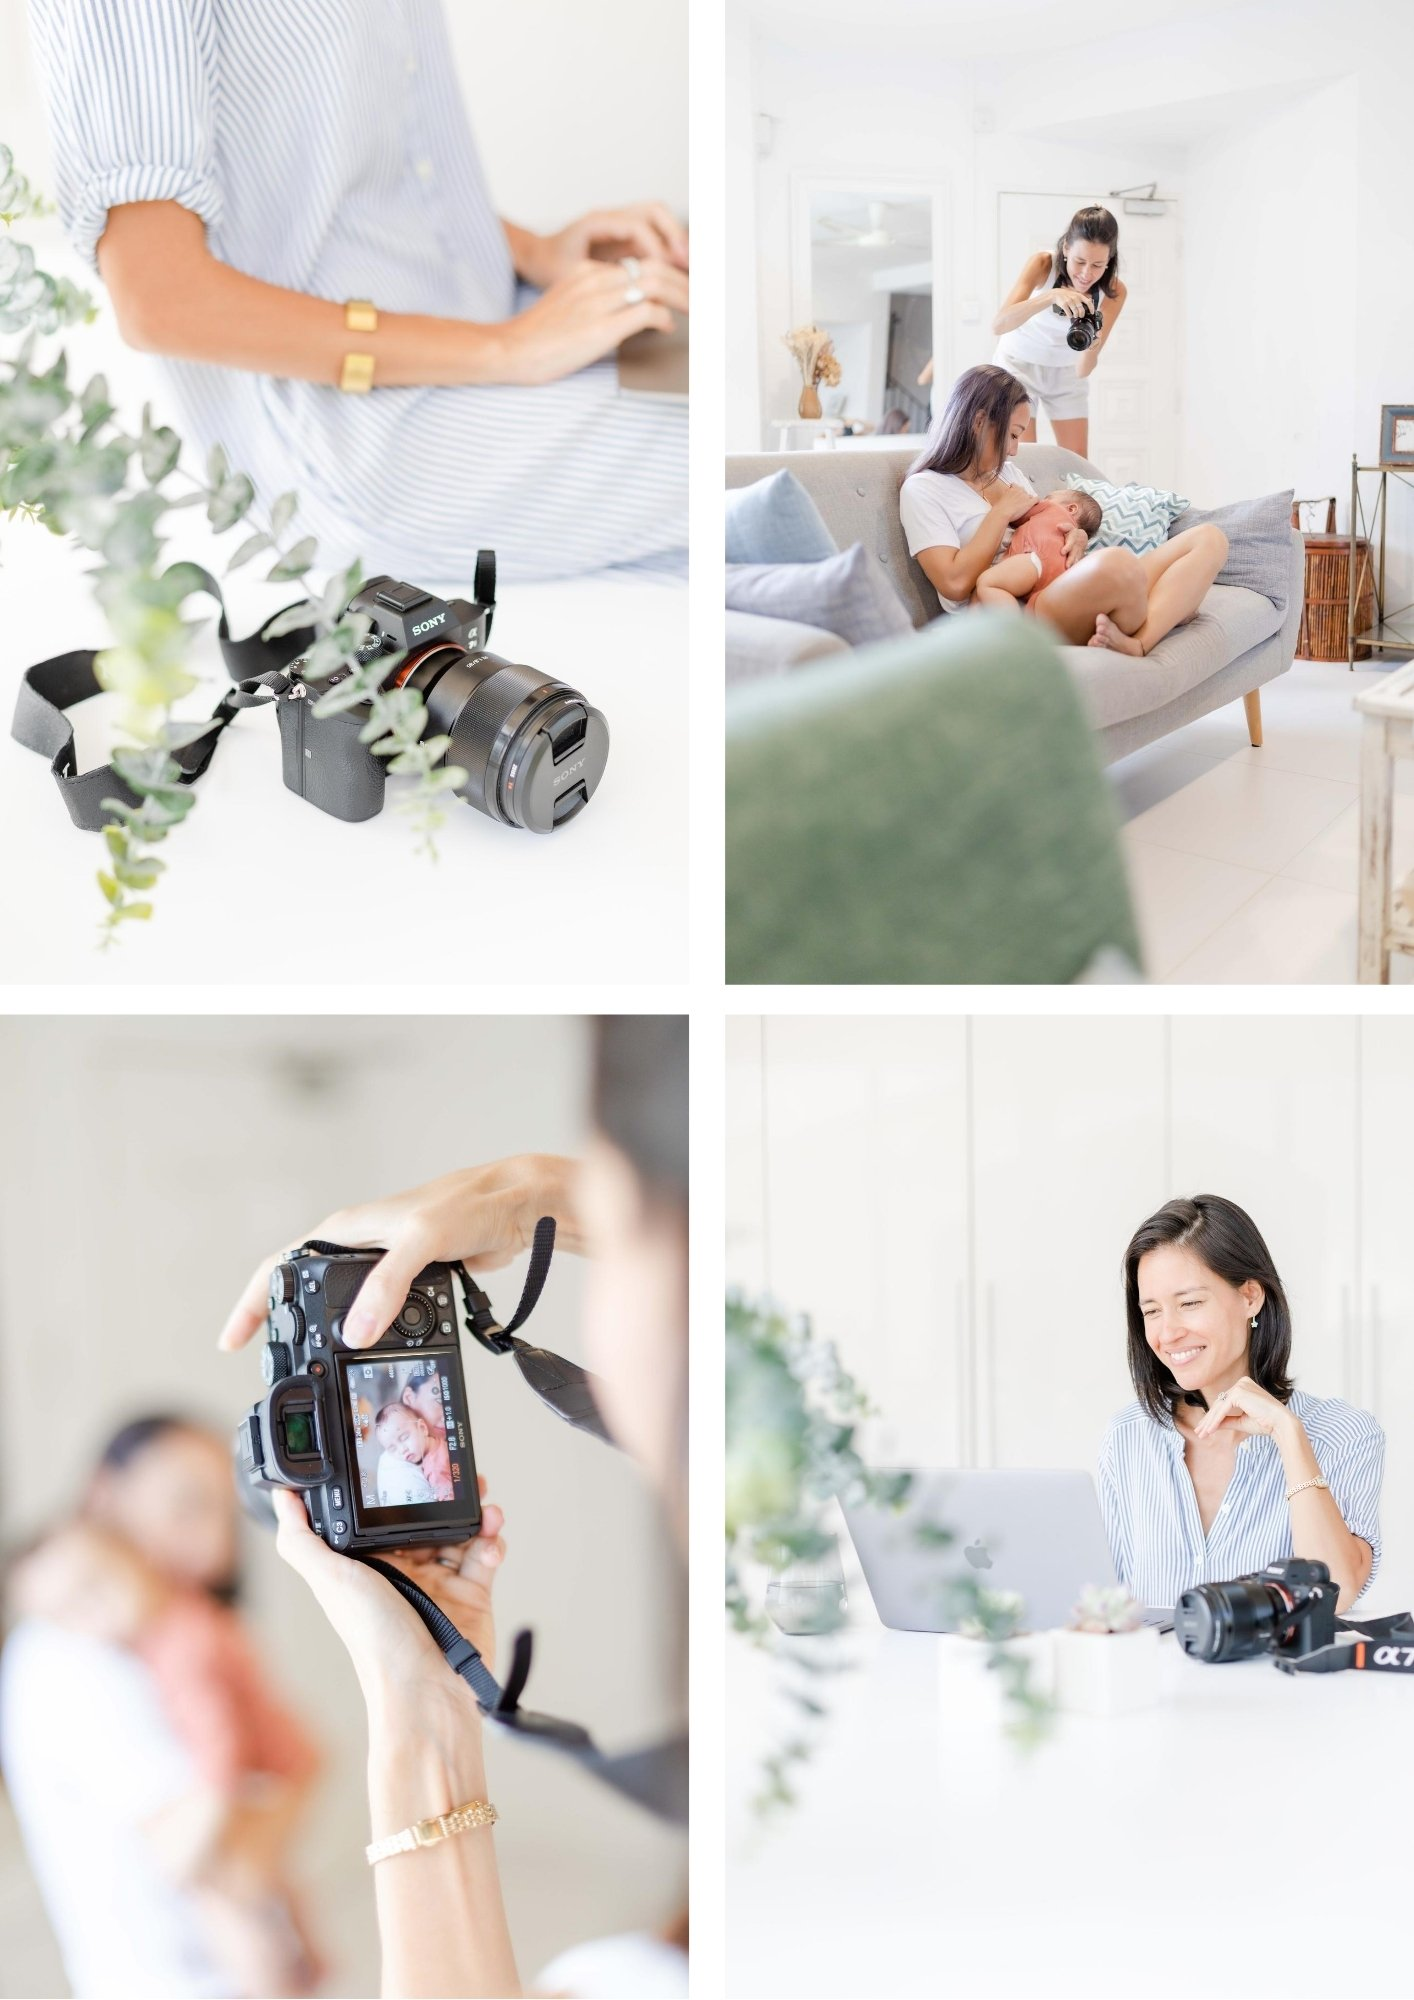 What do you offer to the world - behind the scenes brand photography showing what you do.